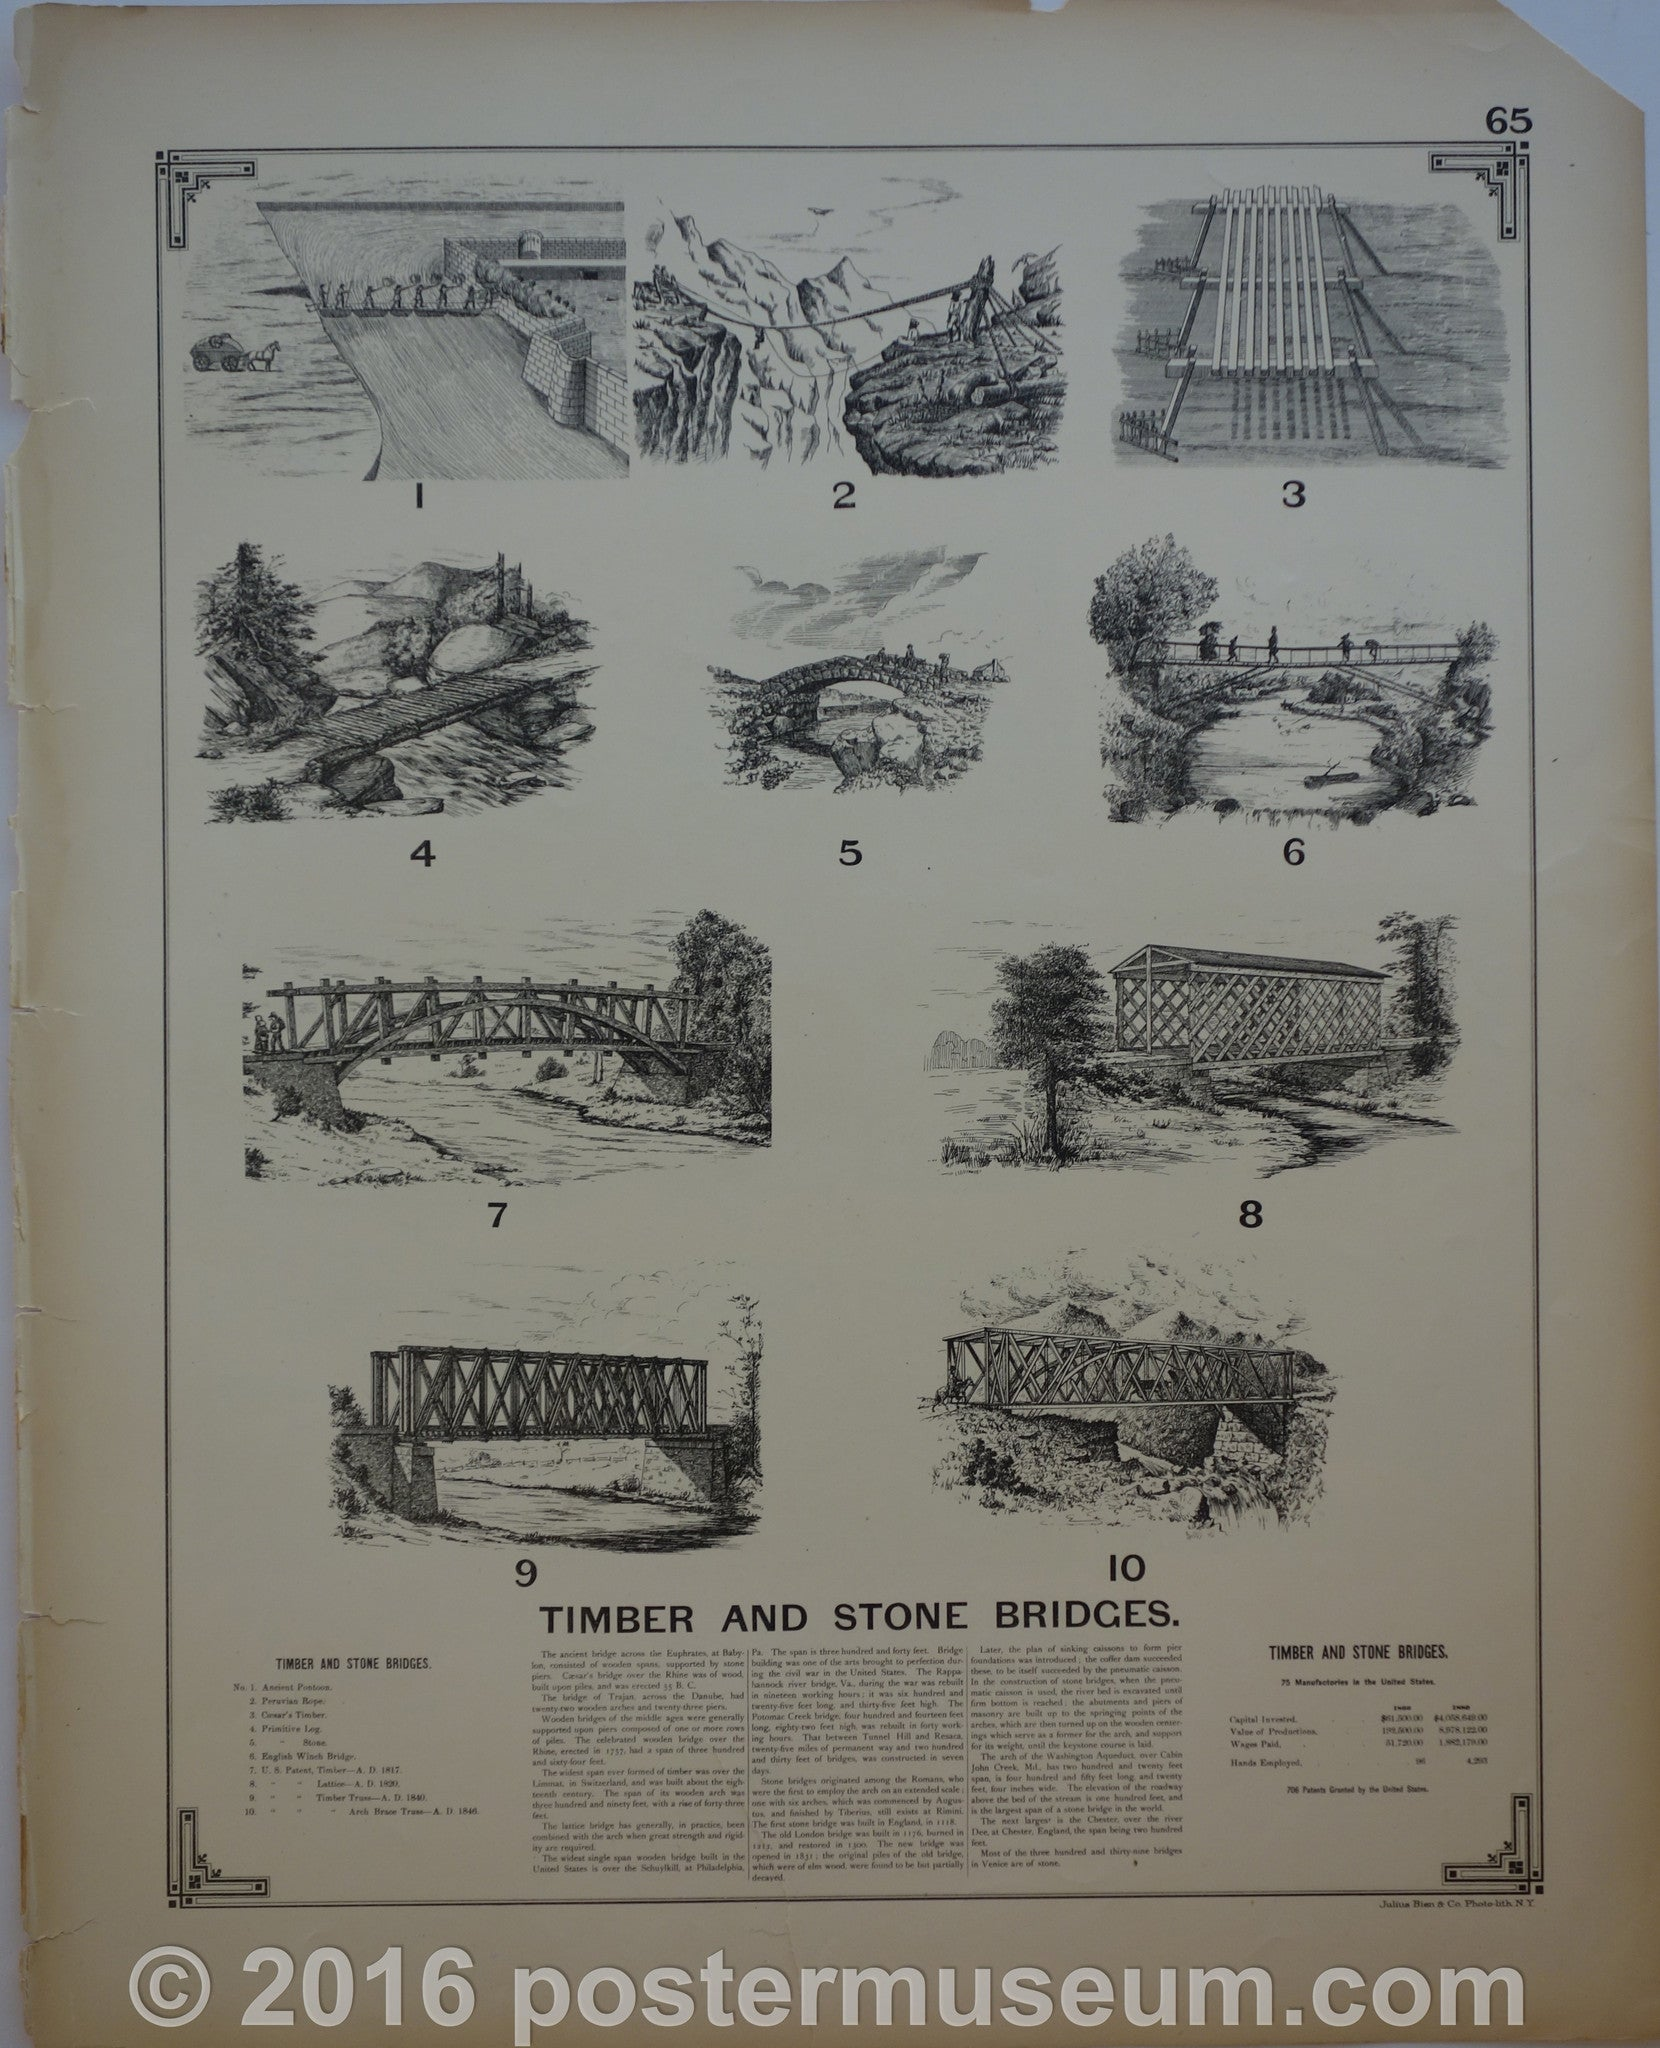 Timber and stone bridges and Railway Systems